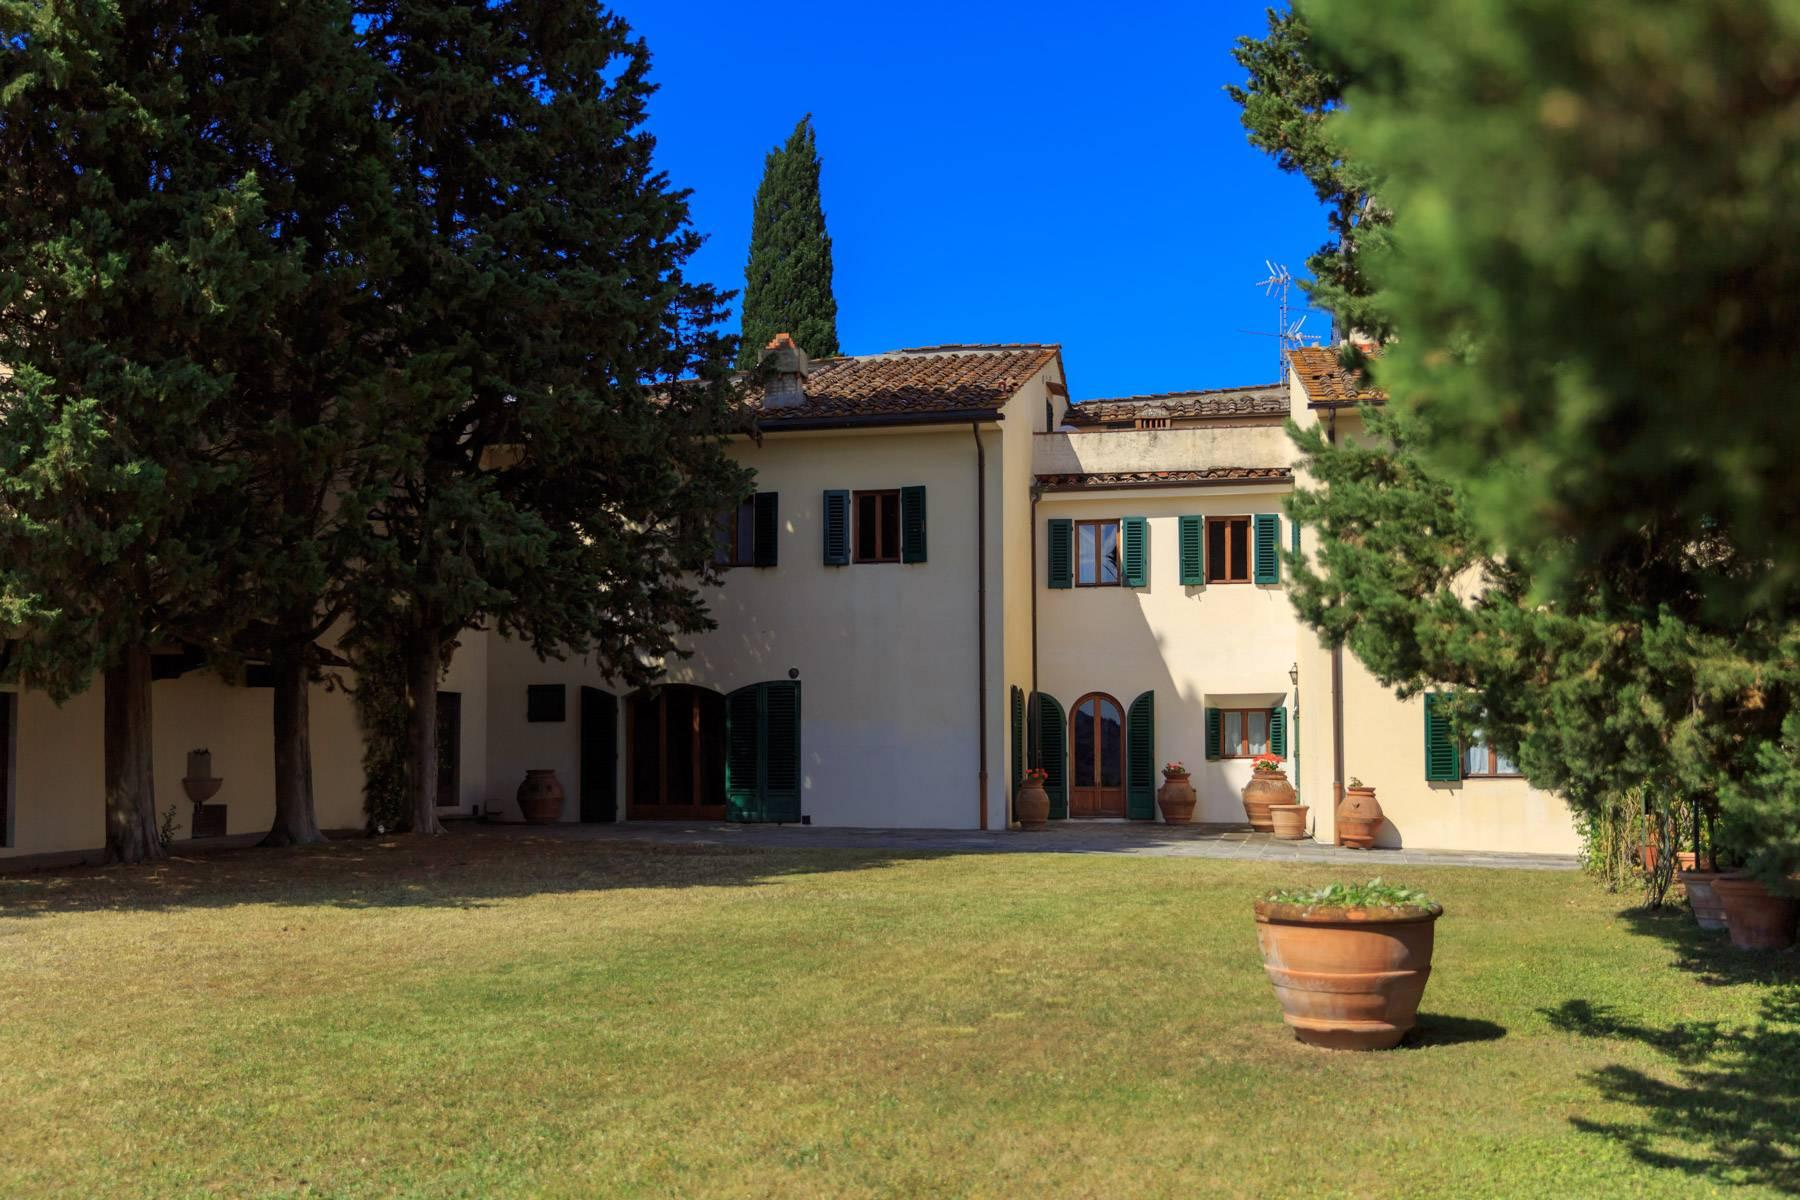 Large period villa with land at 10 minutes' drive from Florence - 4